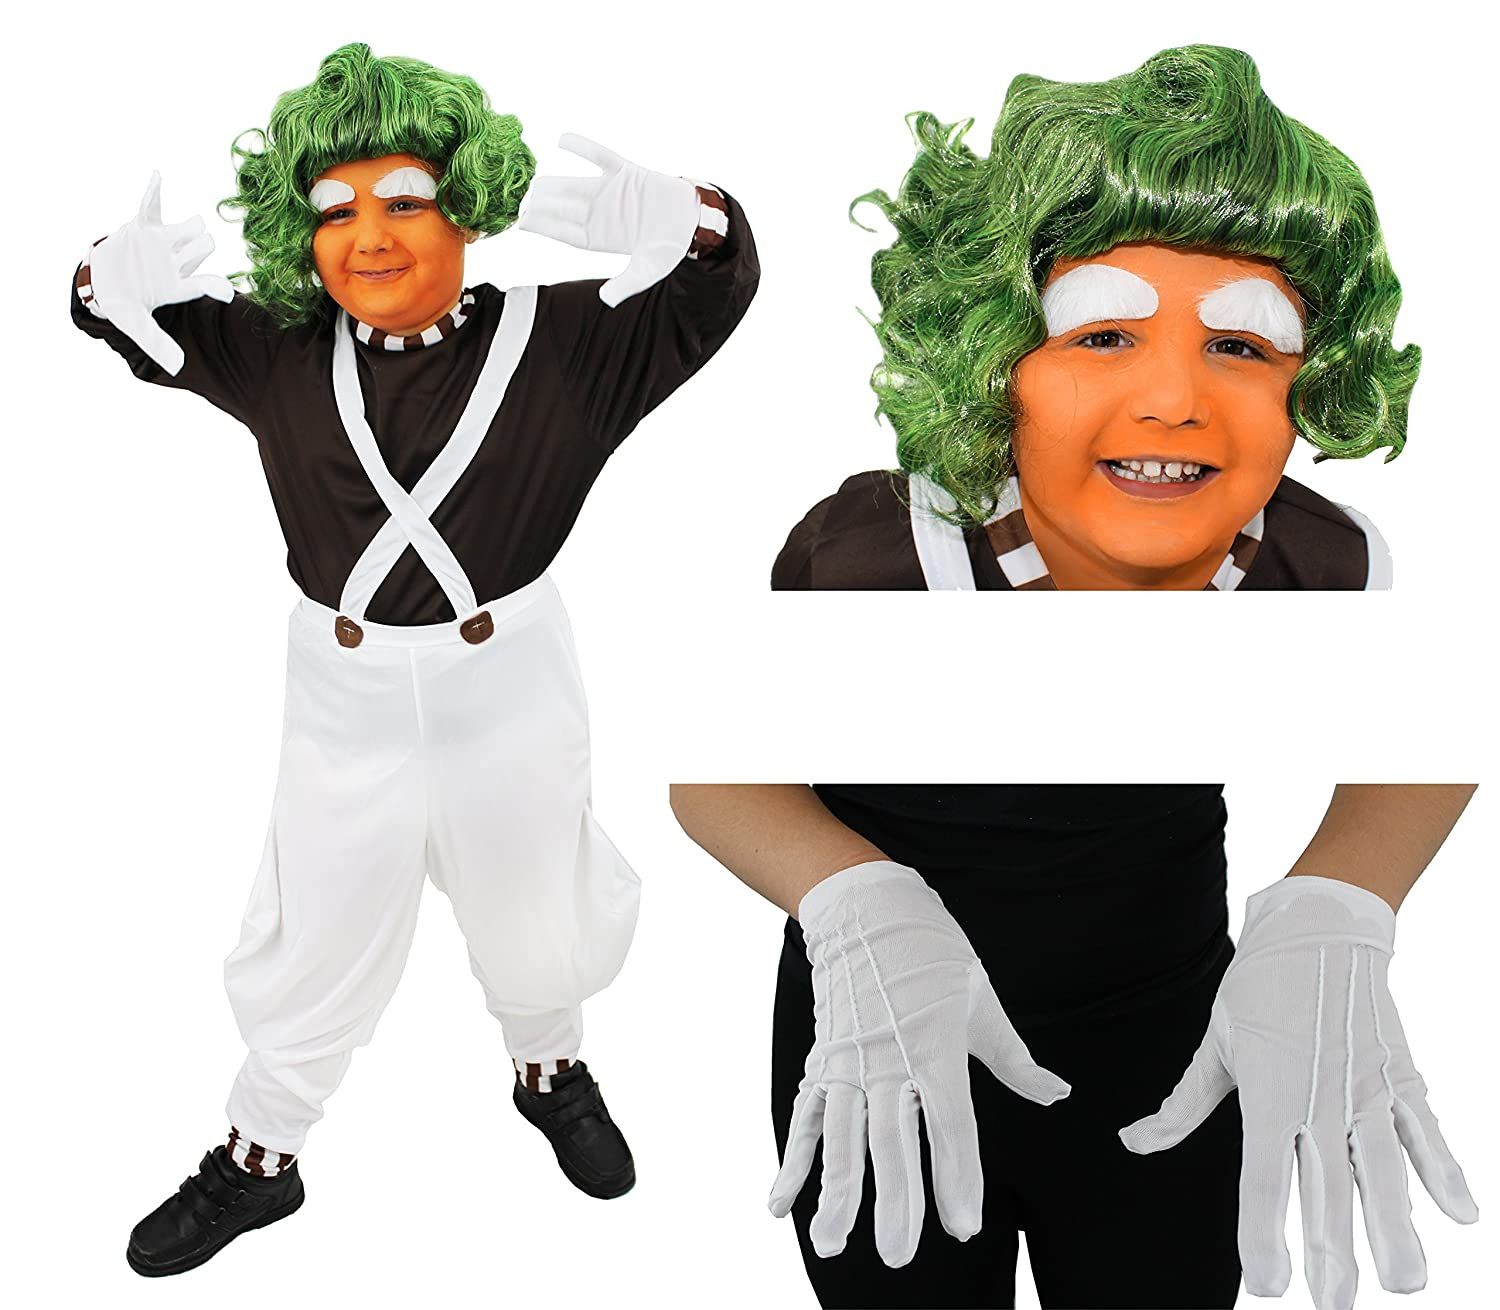 Chocolate Factory Worker Kids Fancy Dress Oompa Loompa Boys Girls Book Costume